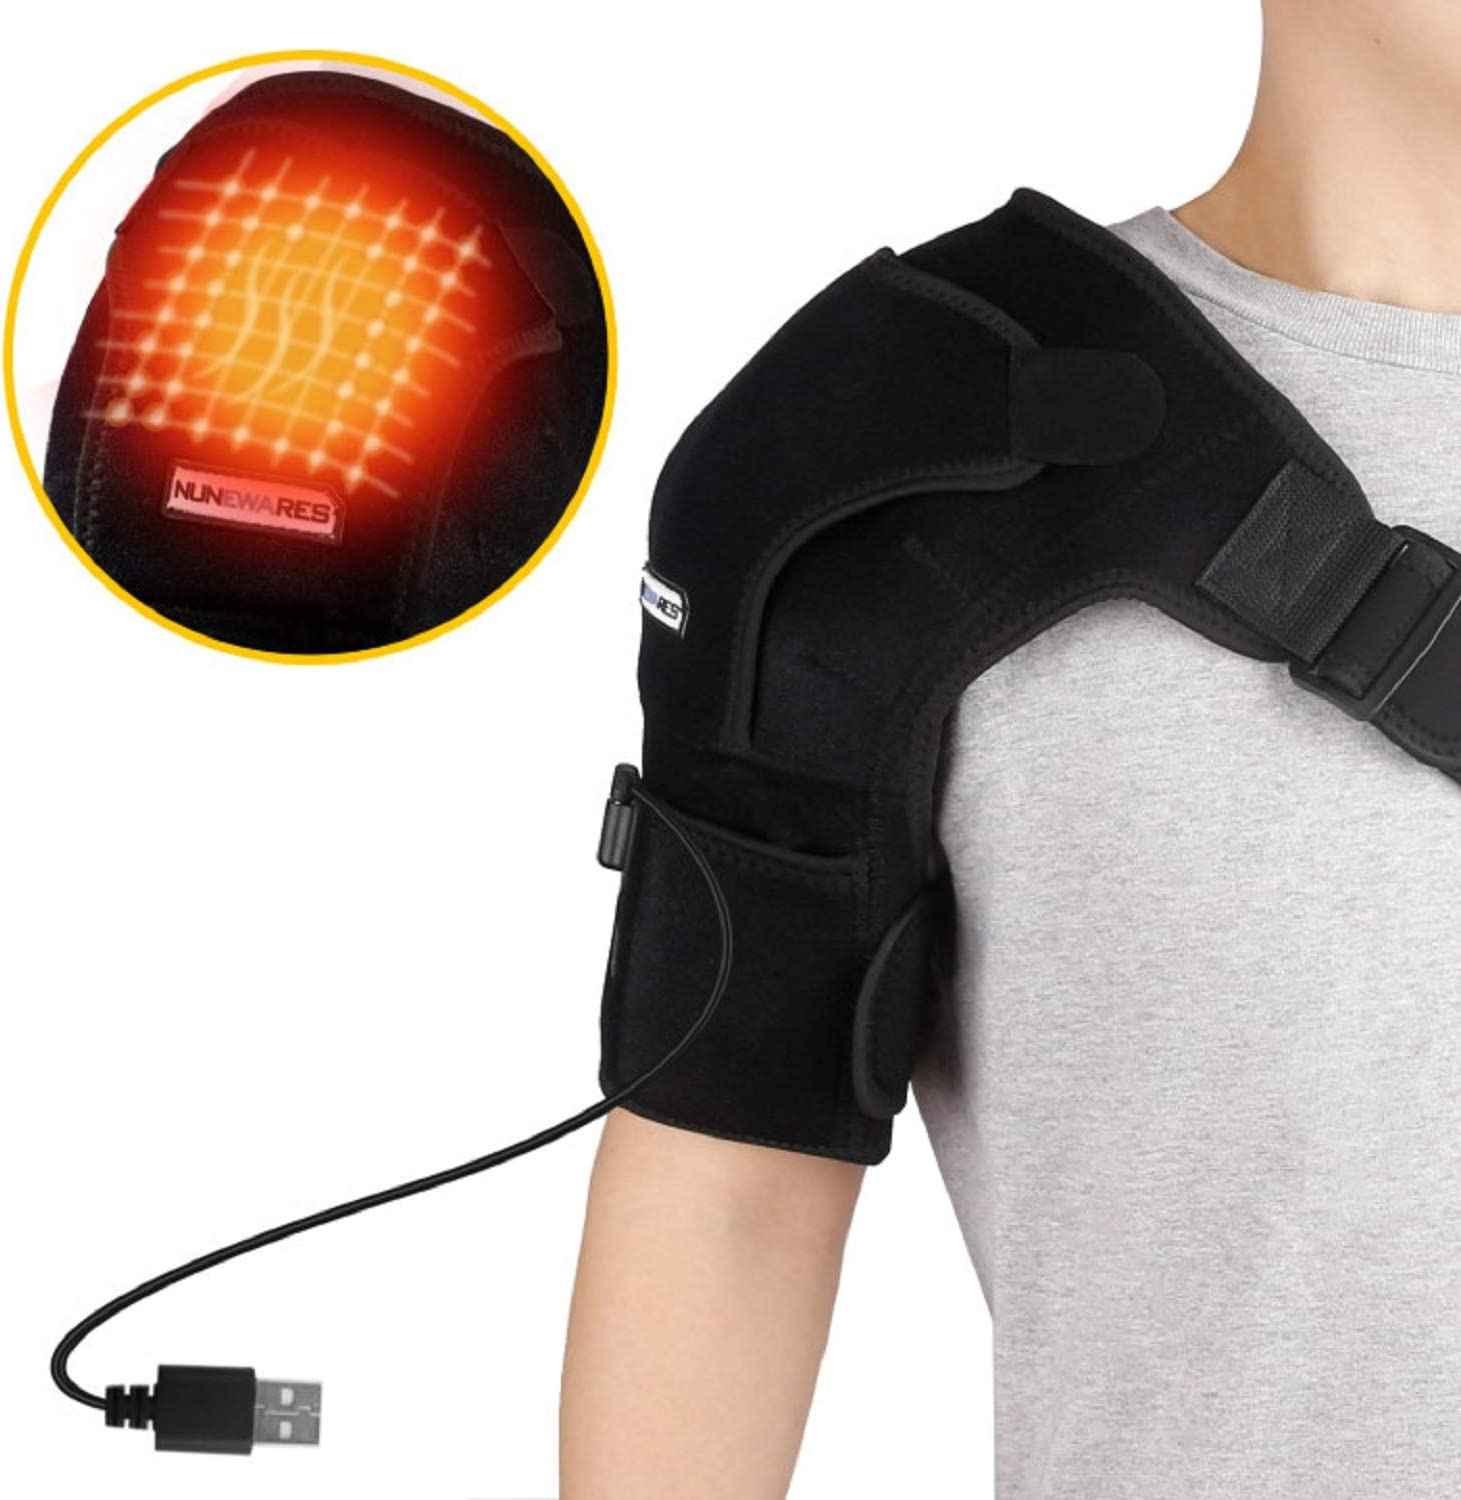 Heated Shoulder Brace Wrap, 3 Heat Settings Heating Pad with Hot and Cold Therapy for Frozen Shoulder, Pain Relief,Bursitis, Strain, Stiff, Soreness (No Battery Included).